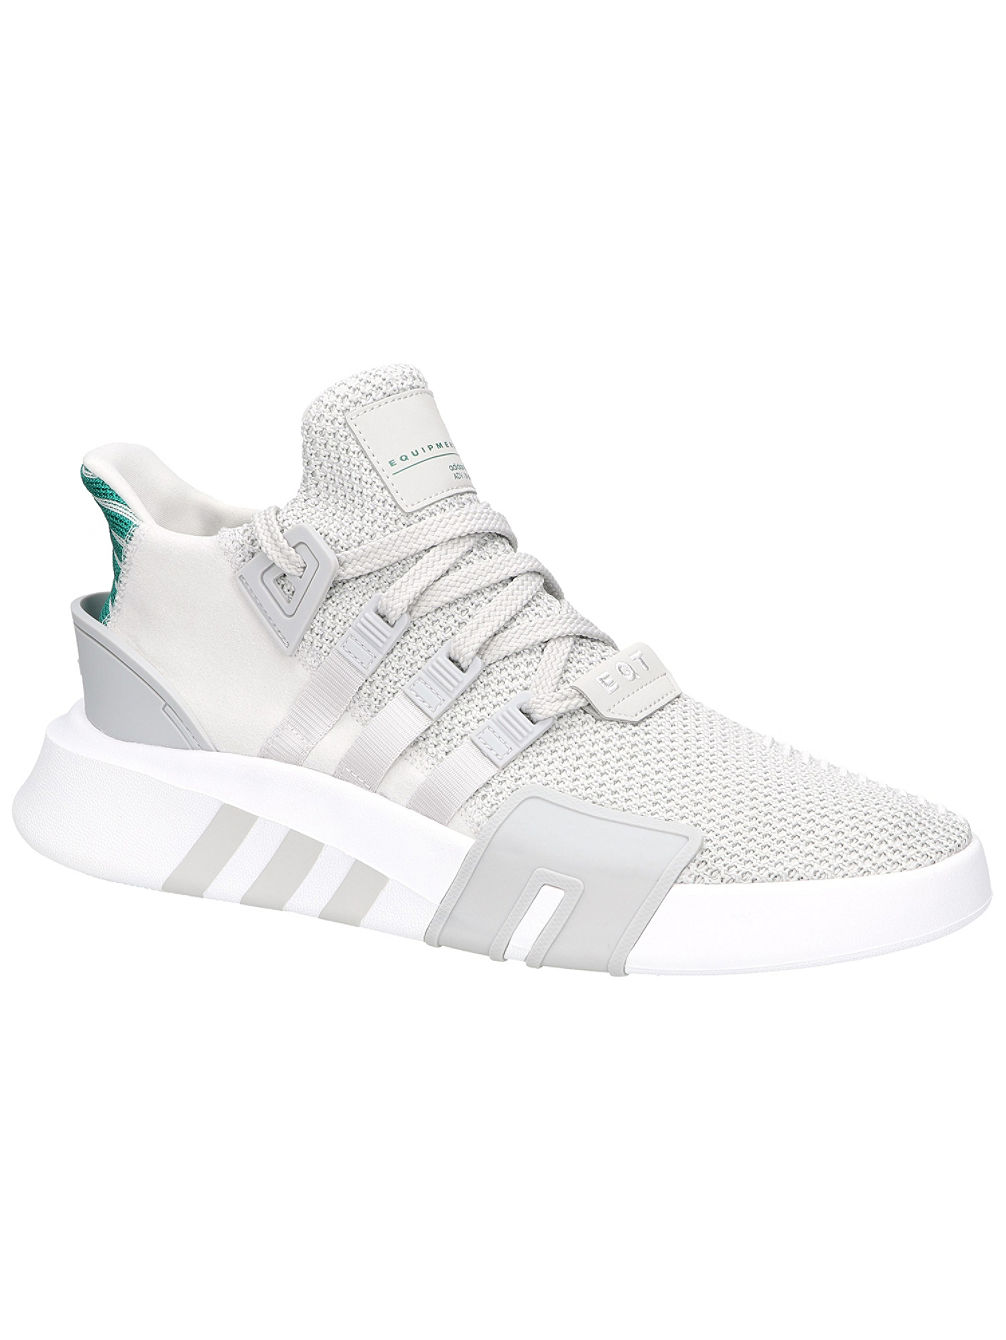 Buy adidas Originals EQT Bask ADV Sneakers online at blue-tomato.com 590322efde86